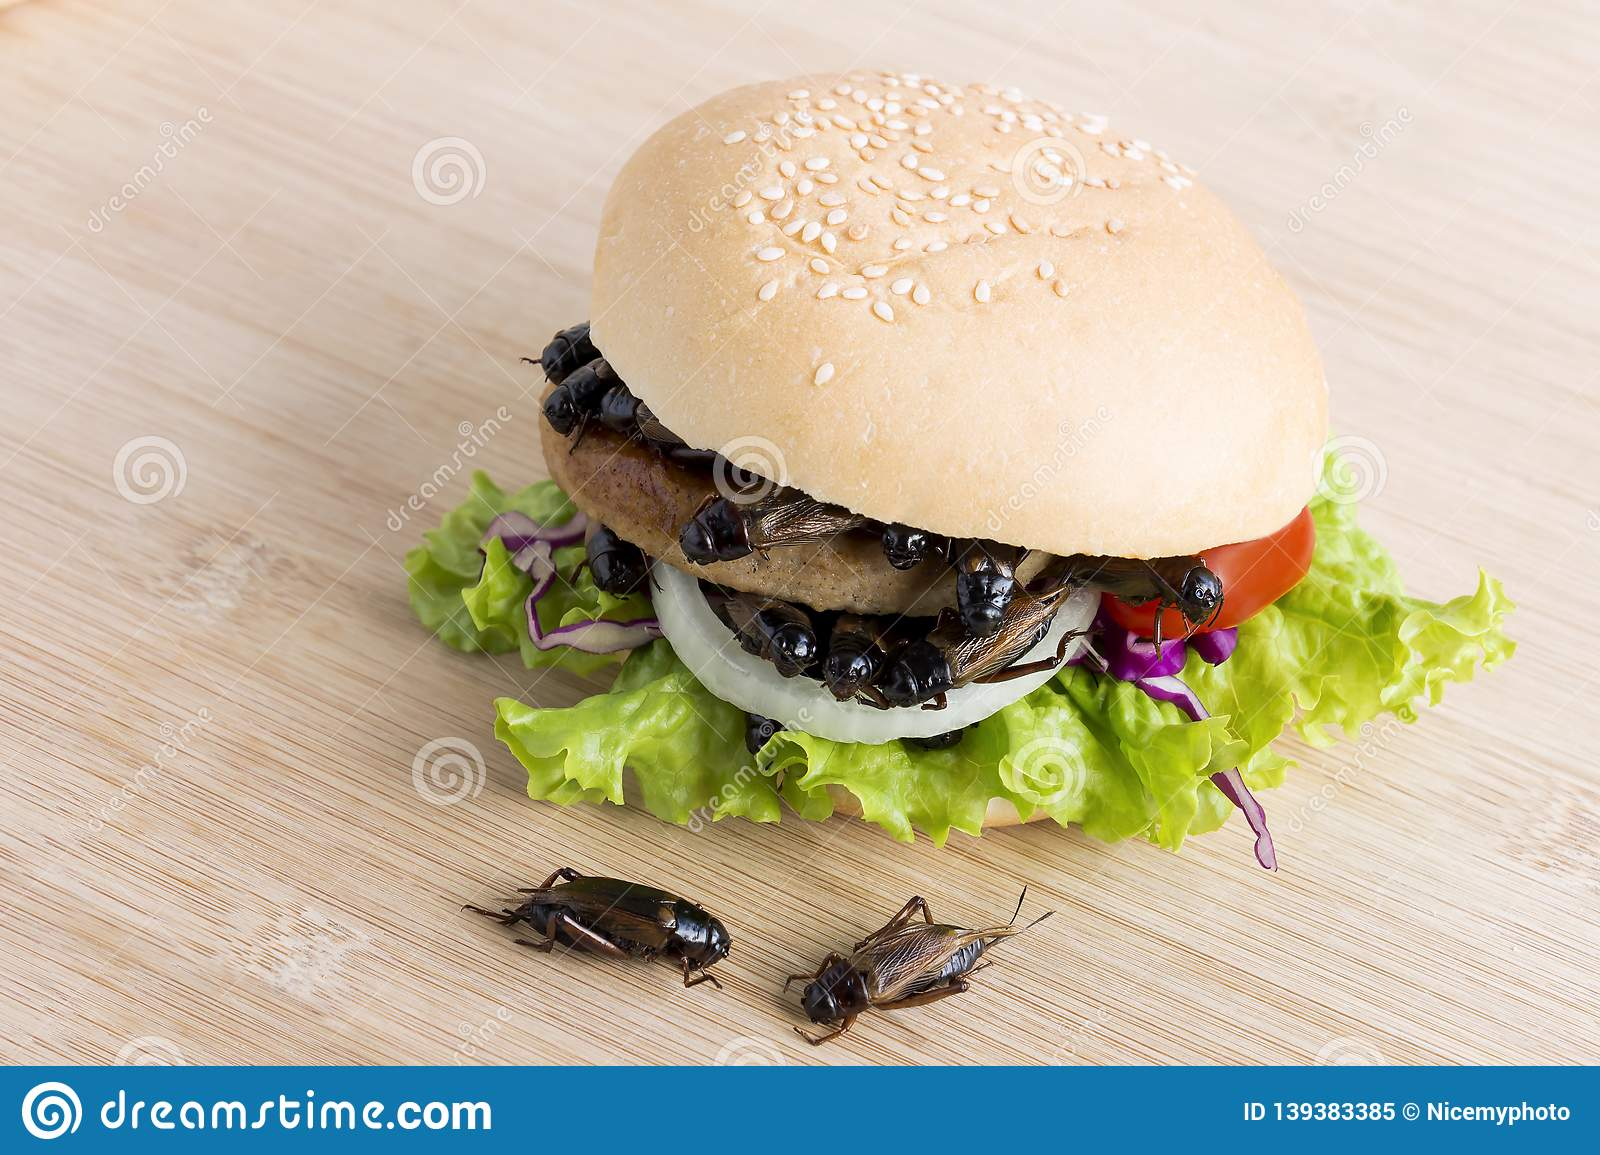 Crickets insect for eating as food items in bread burger made of fried insect meat with vegetable on wooden table it is good